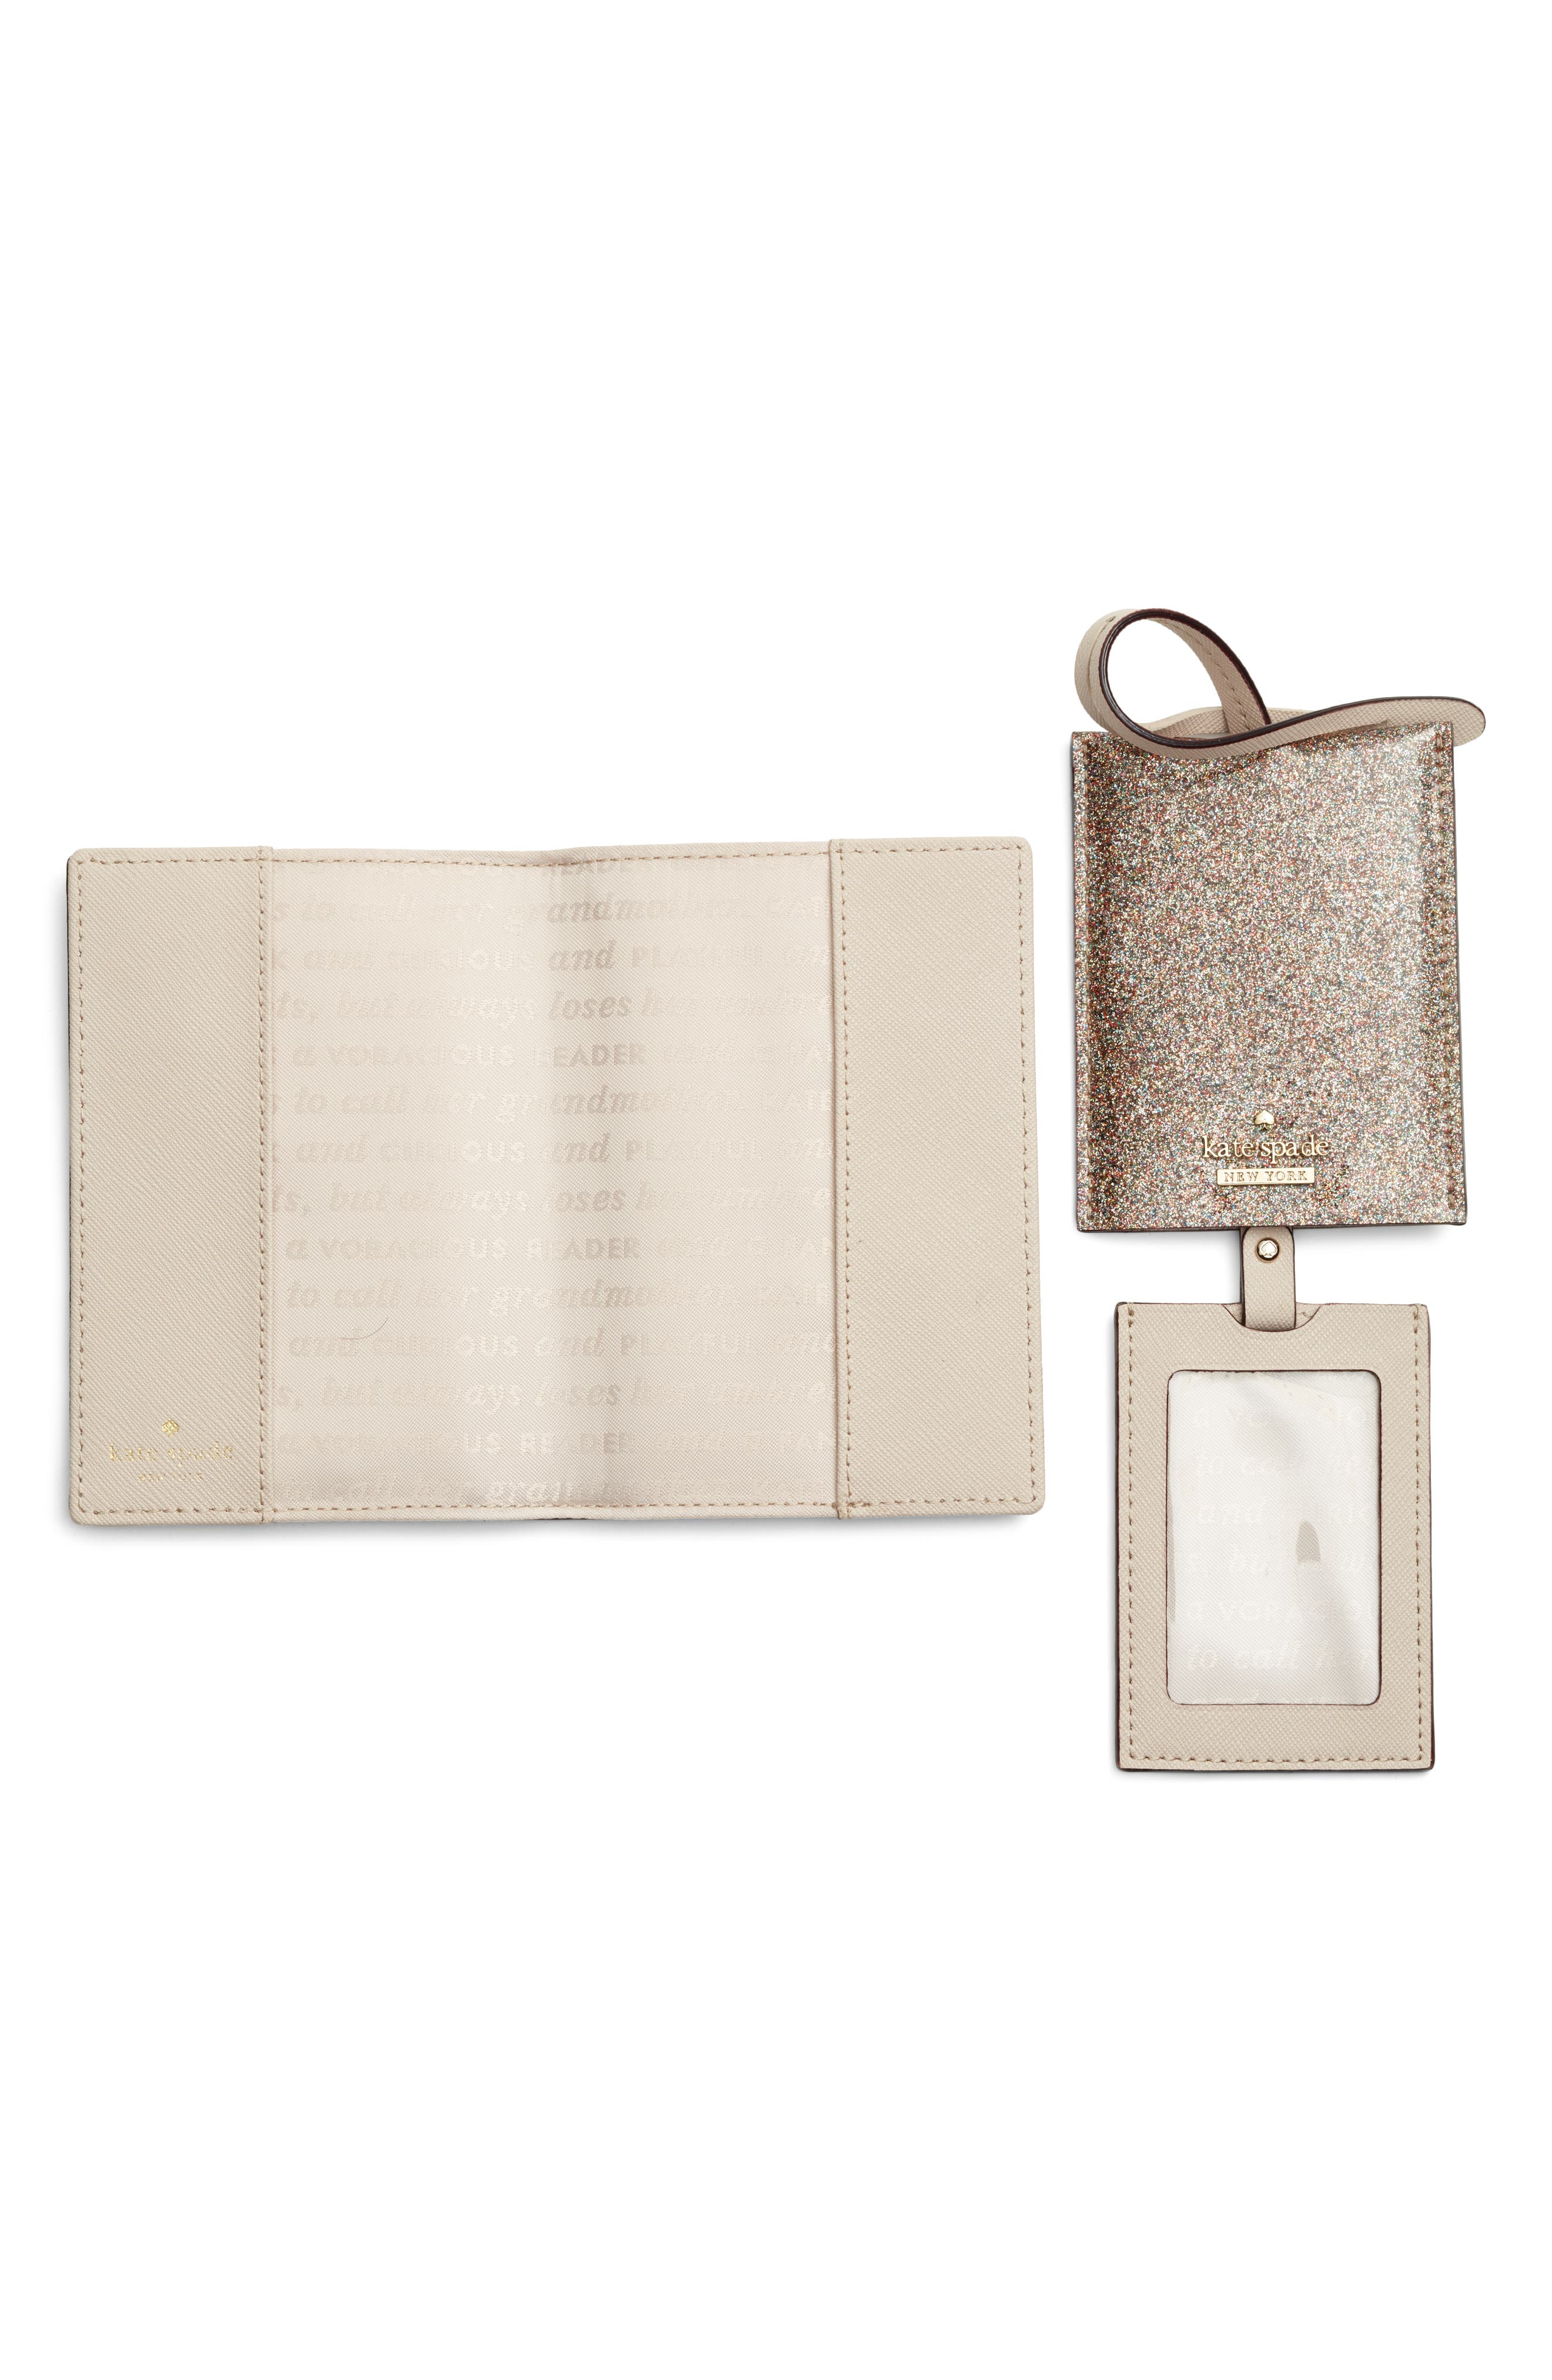 leather passport case & luggage tag set,                             Alternate thumbnail 3, color,                             Multi